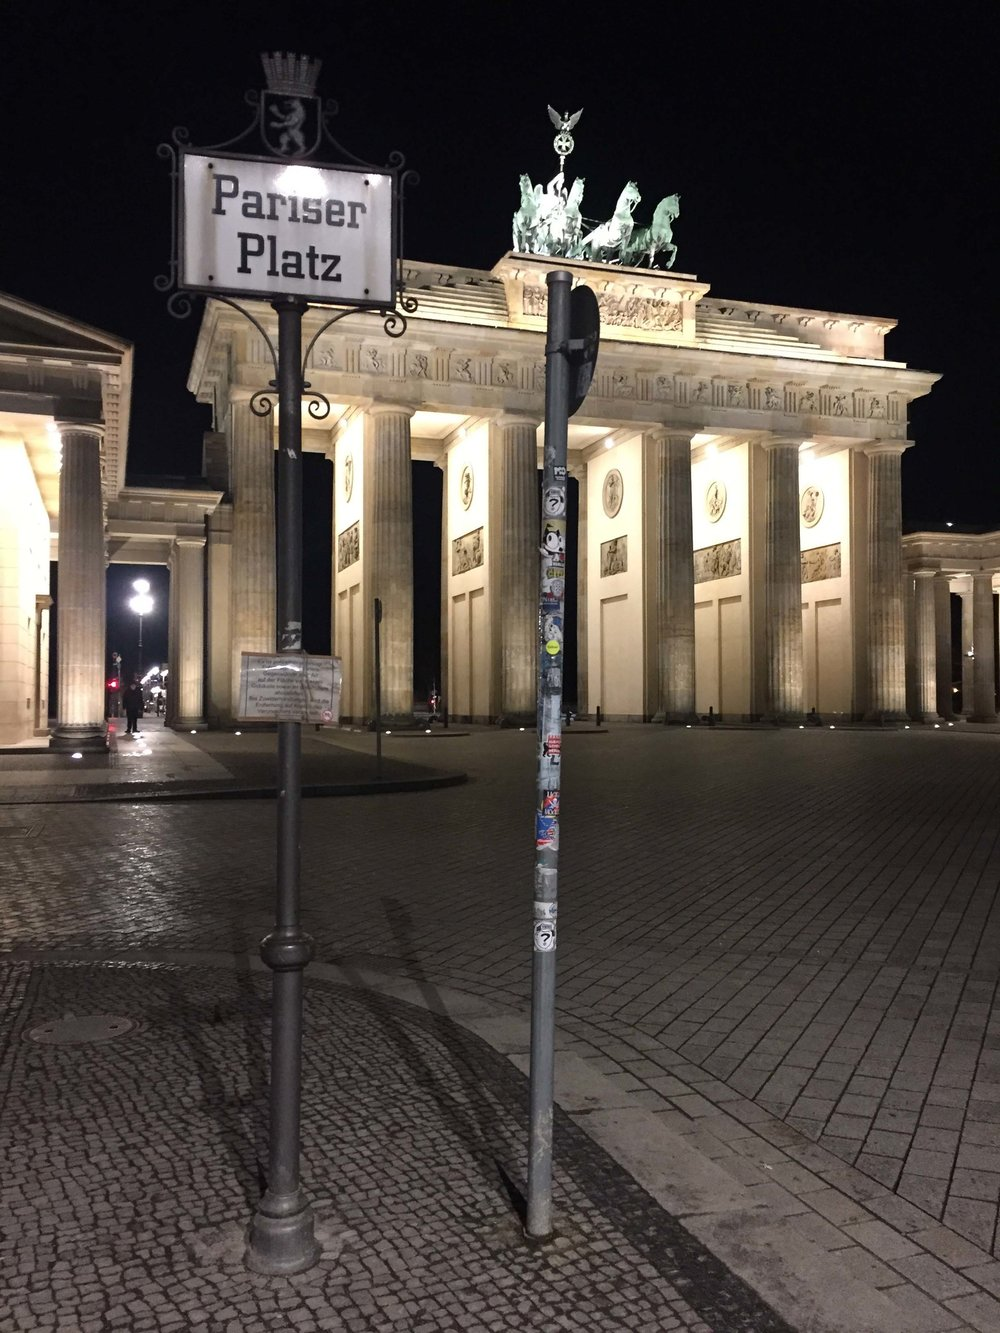 Pariser Platz and Brandenburg Gate - Berlin, Germany.